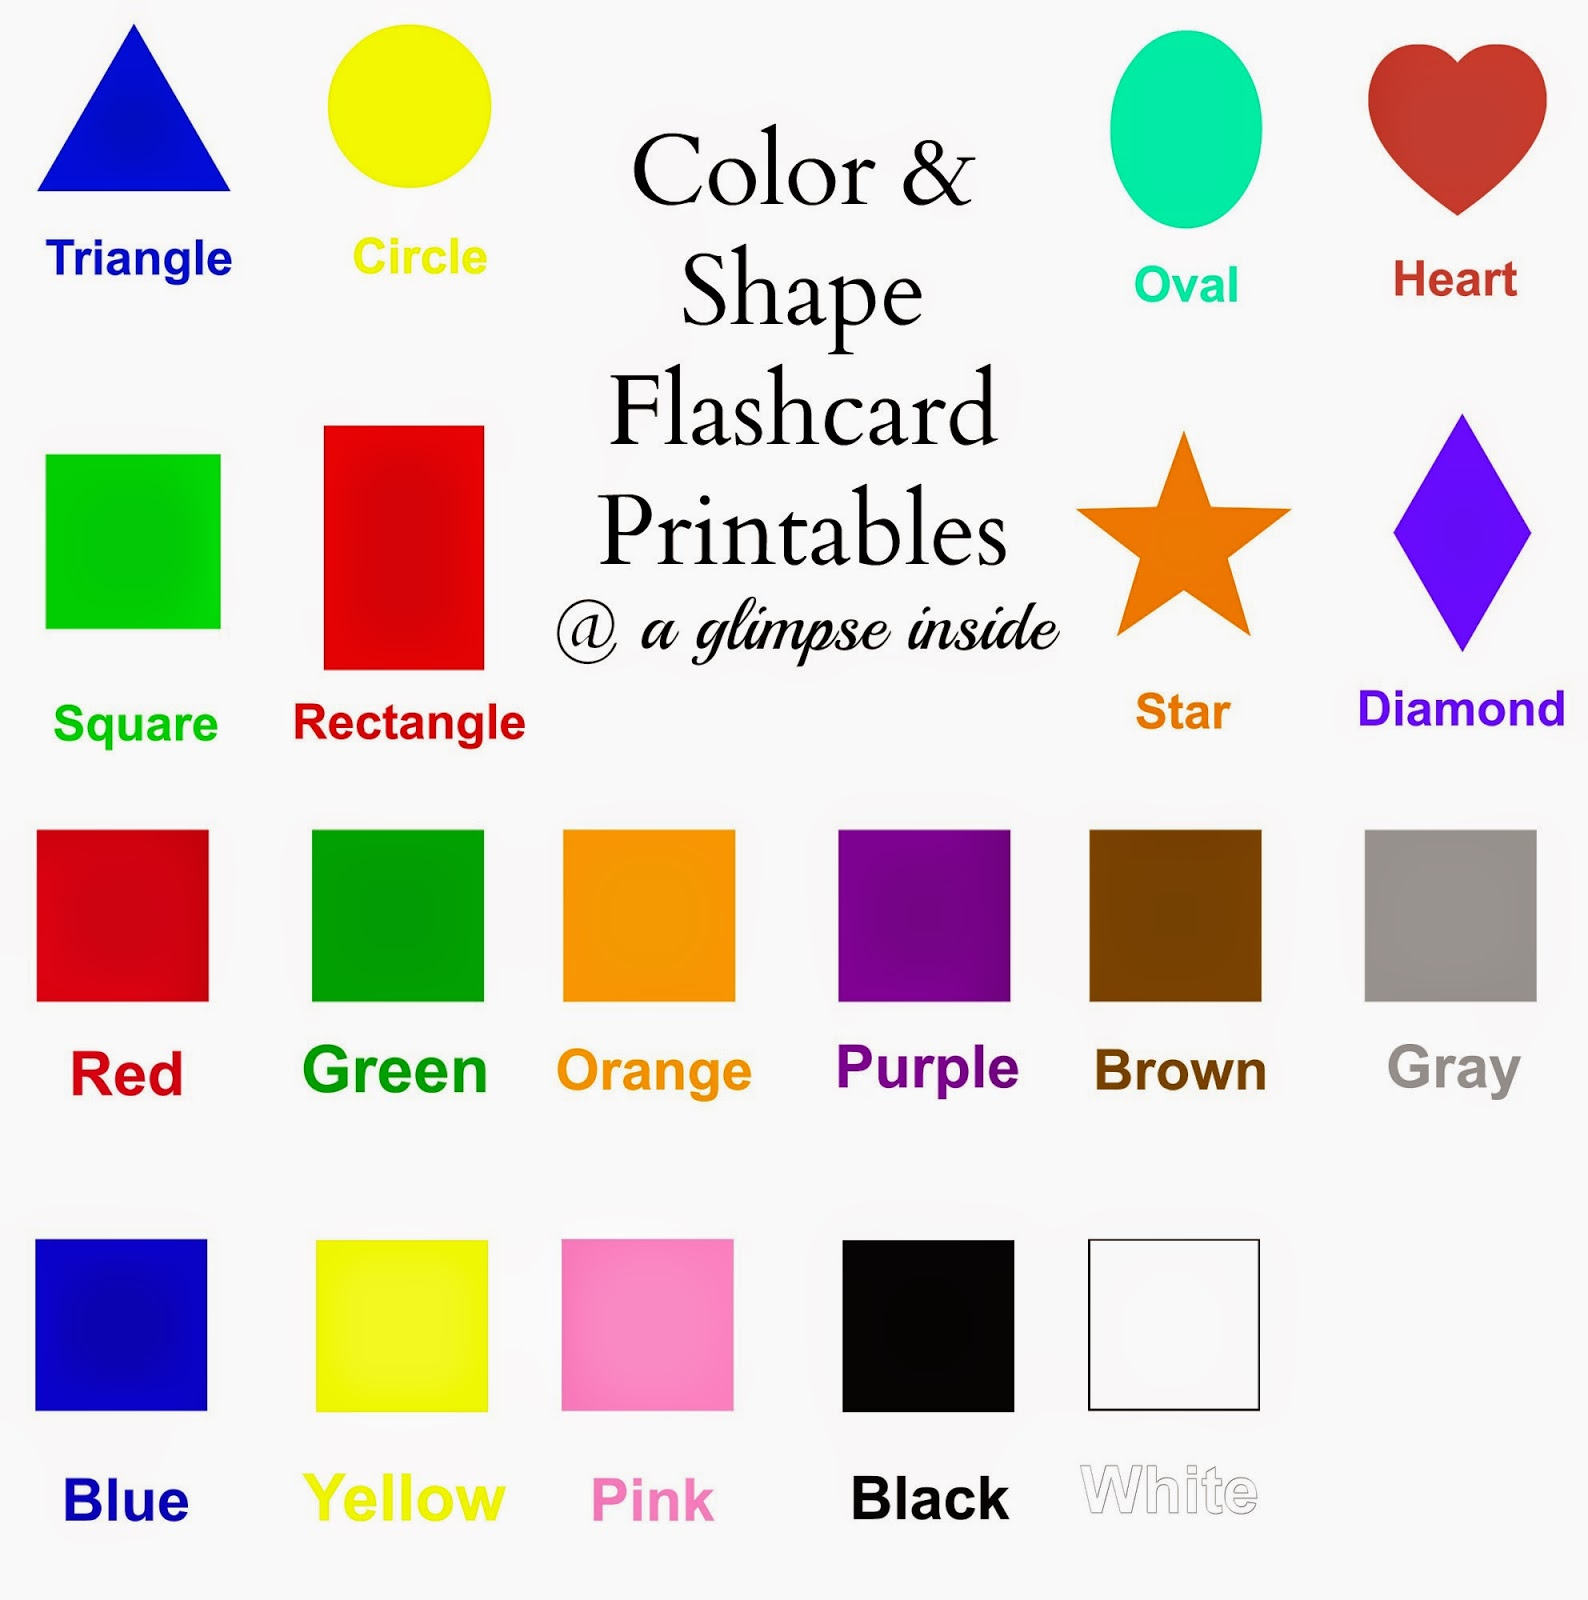 worksheet Shape Flash Cards watch more like shape flash card print outs alphabet flashcards printables